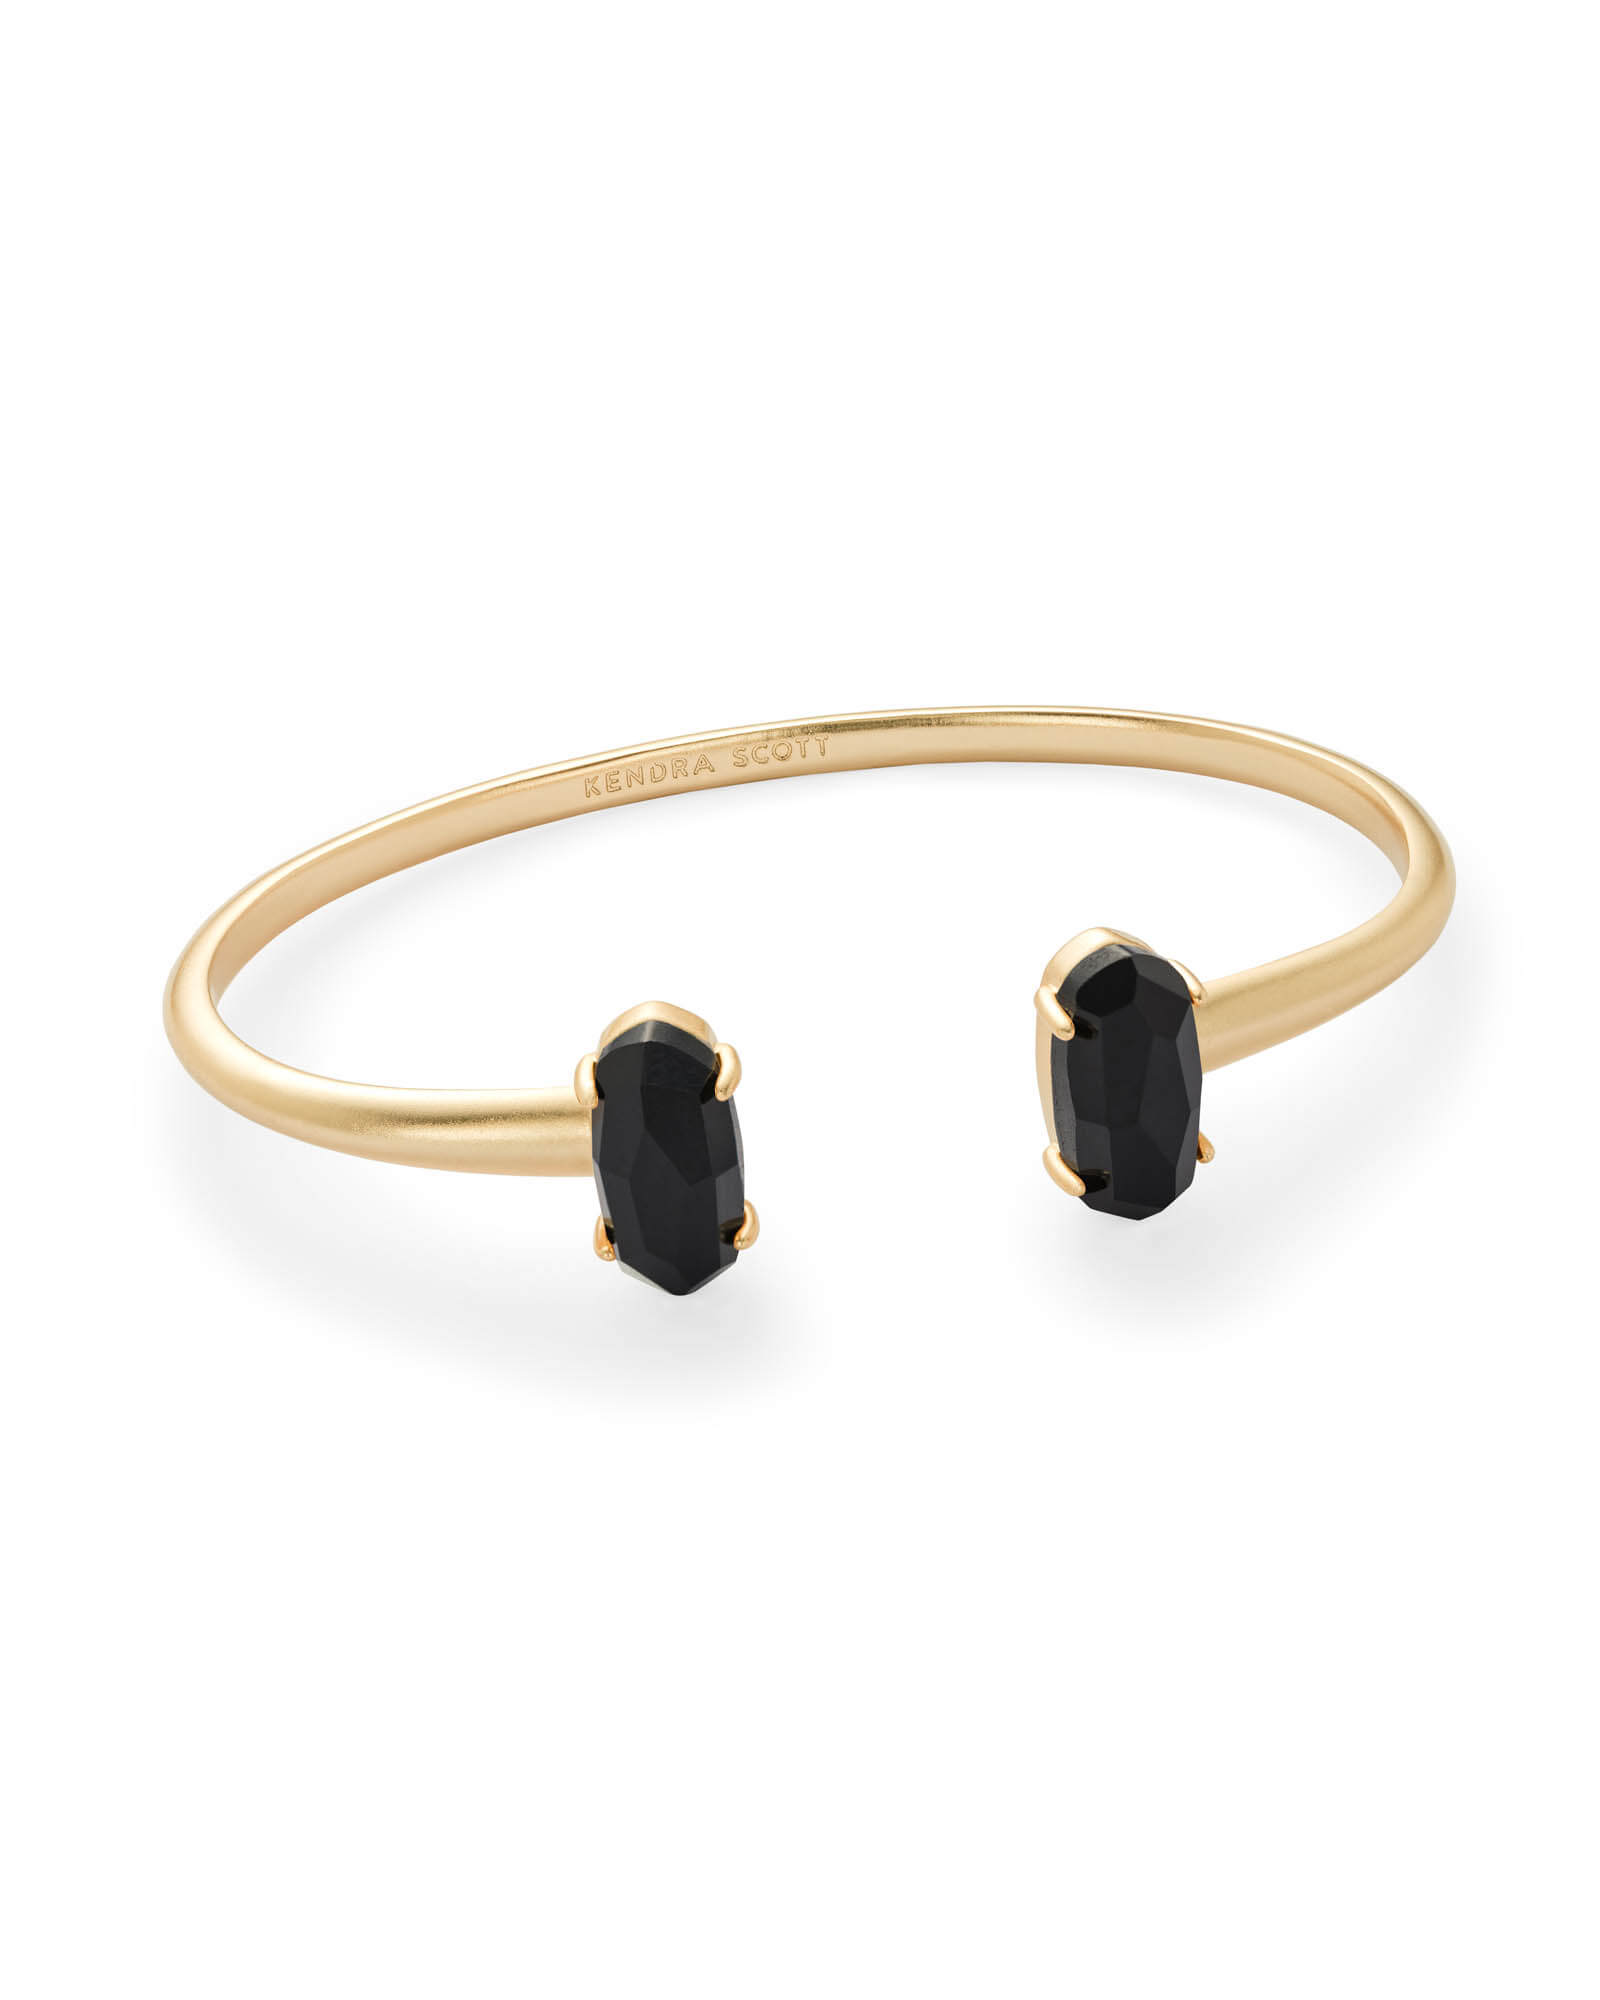 Edie Gold Cuff Bracelet in Black Opaque Glass